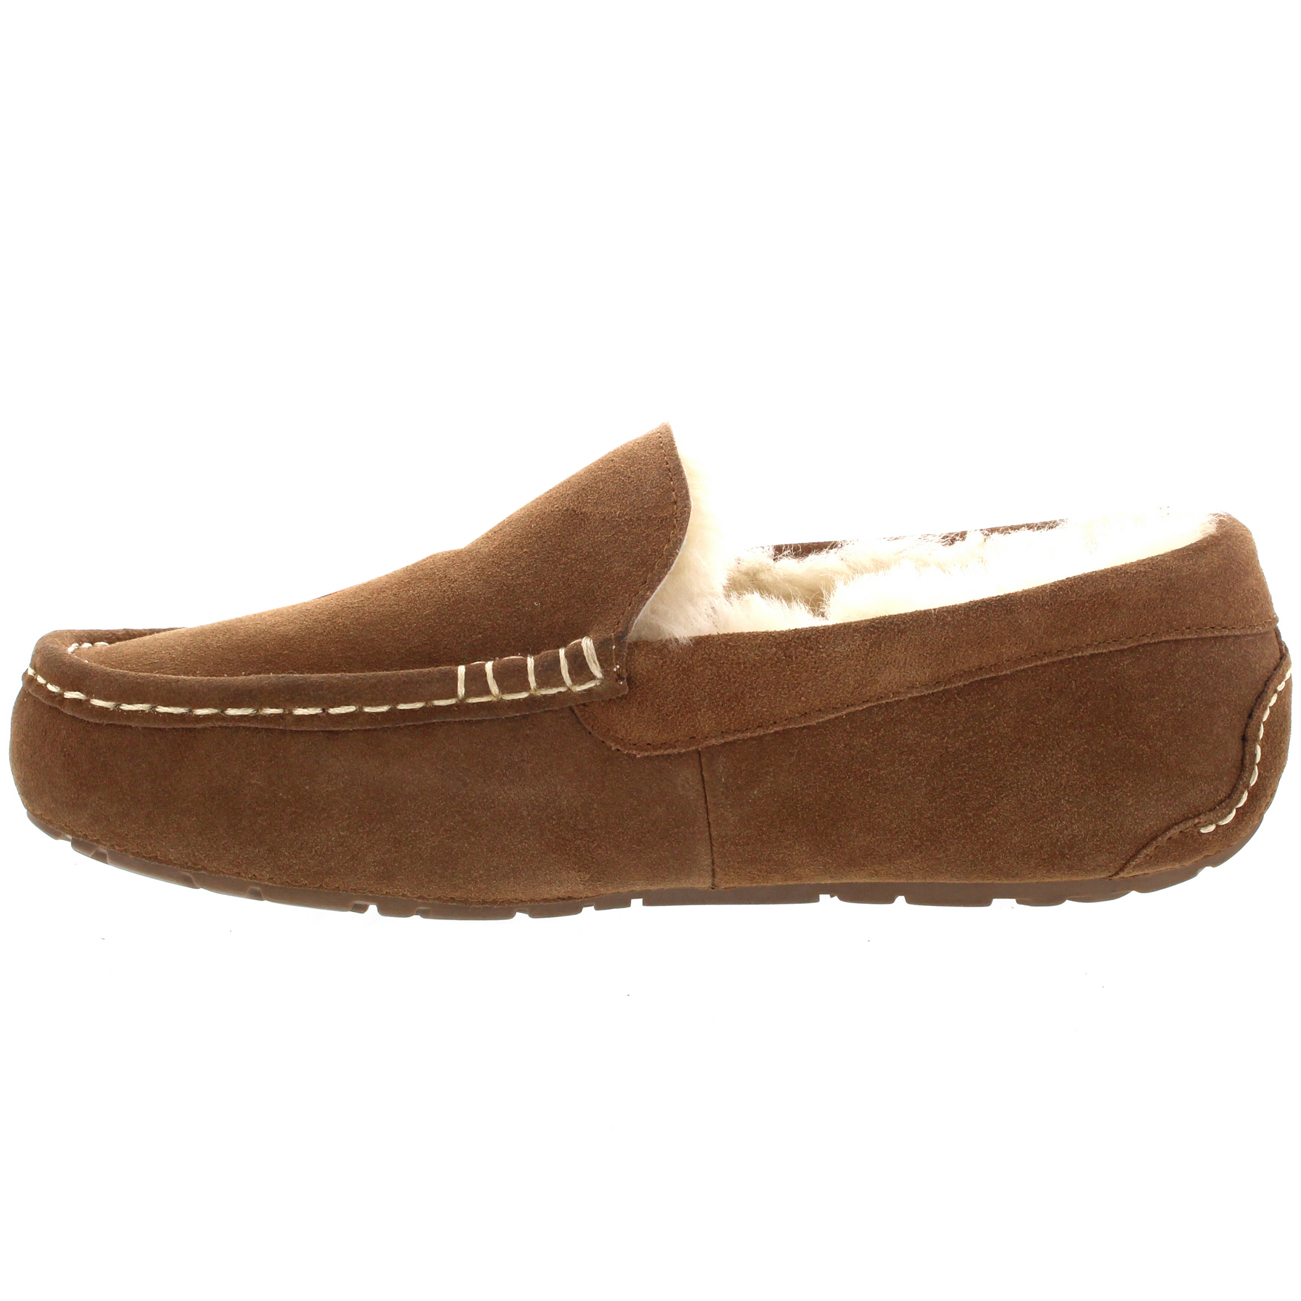 Leather Moccasin House Shoes